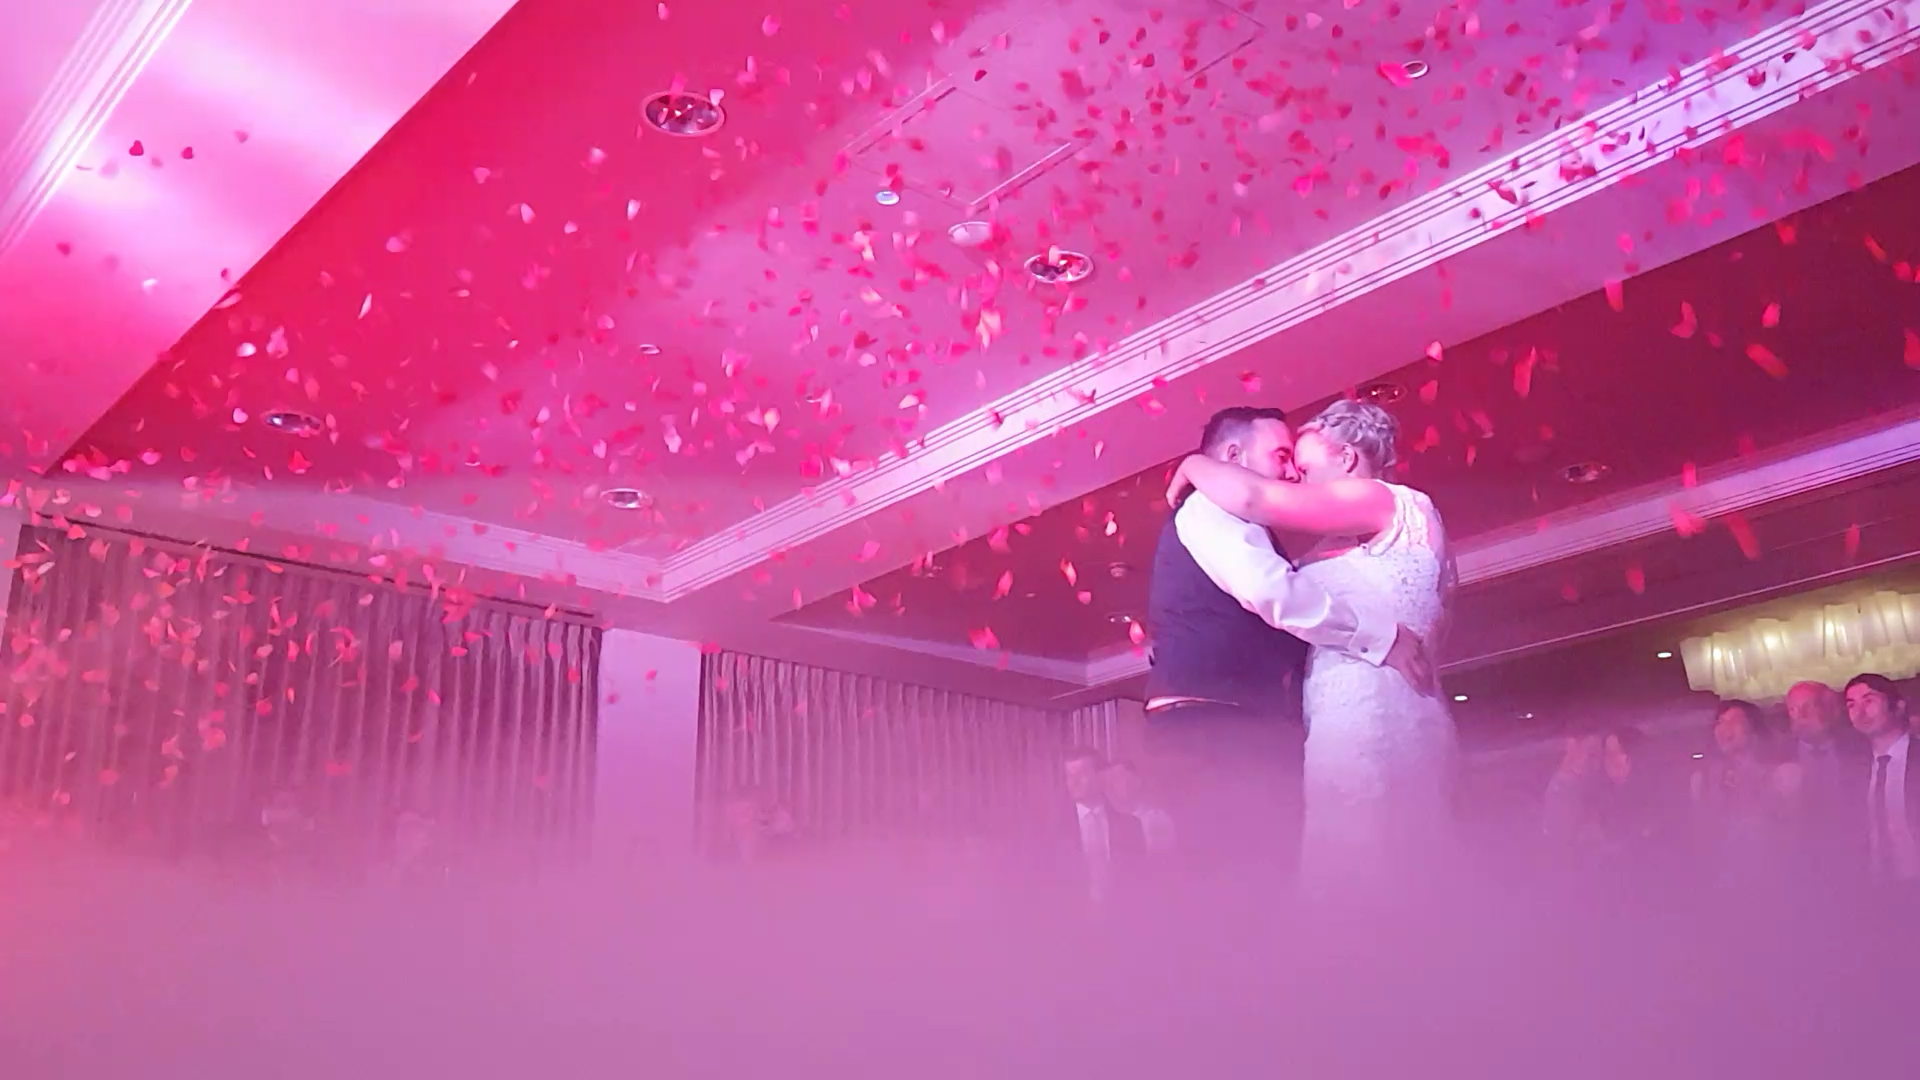 Dancing On The Clouds and Confetti